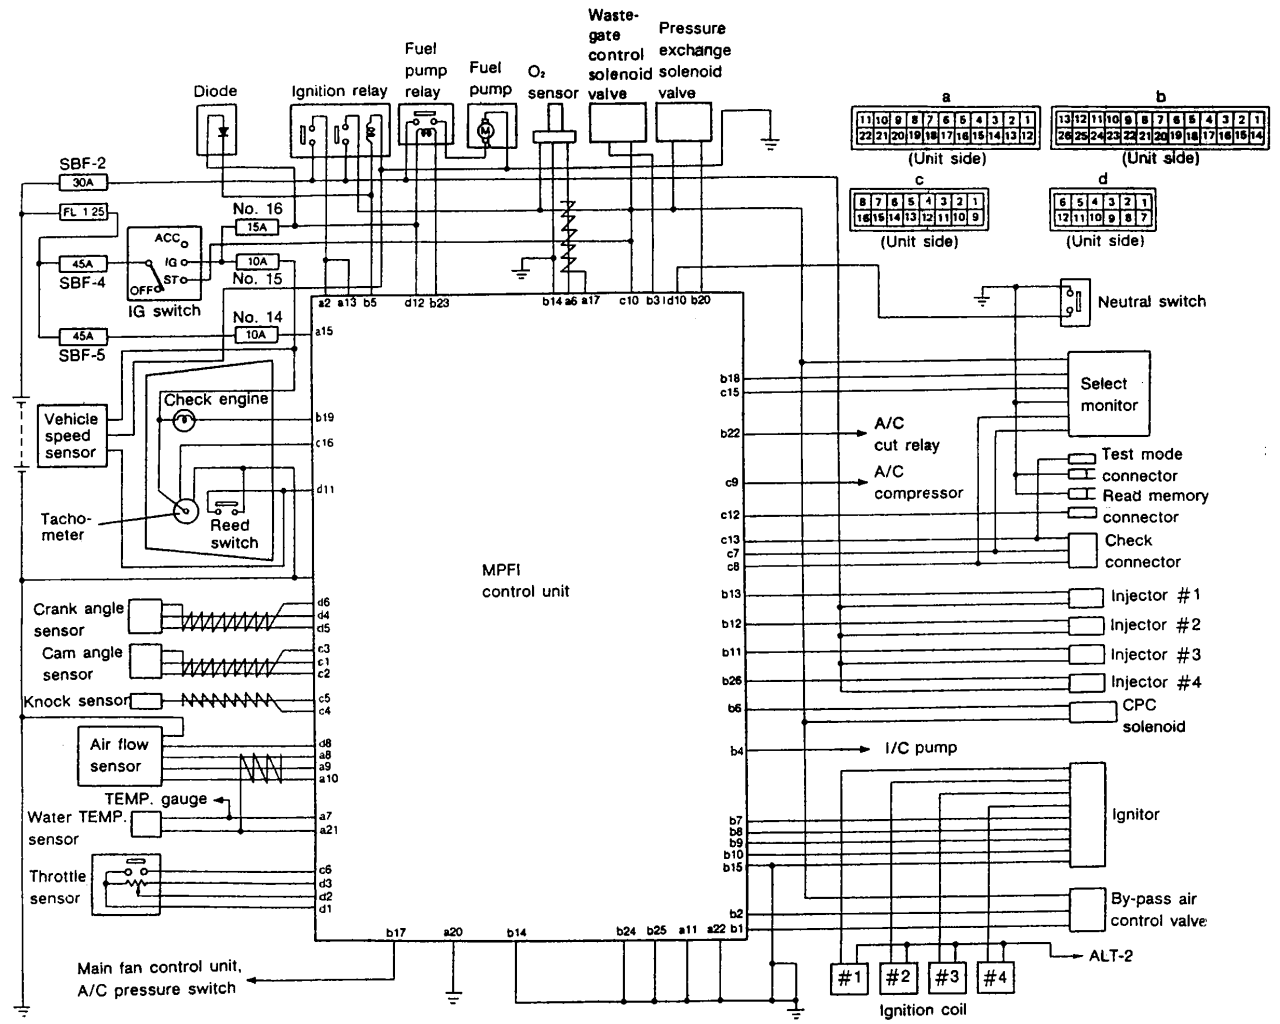 1967 Mustang Wiring And Vacuum Diagrams besides 2004 Ford Escape Wiring Diagram together with Mazda Car Radio Wiring Connector likewise Index as well 5nd2s Mitsubishi L200 Rear Lights Working But No Reverse Lights. on mitsubishi radio wiring diagram